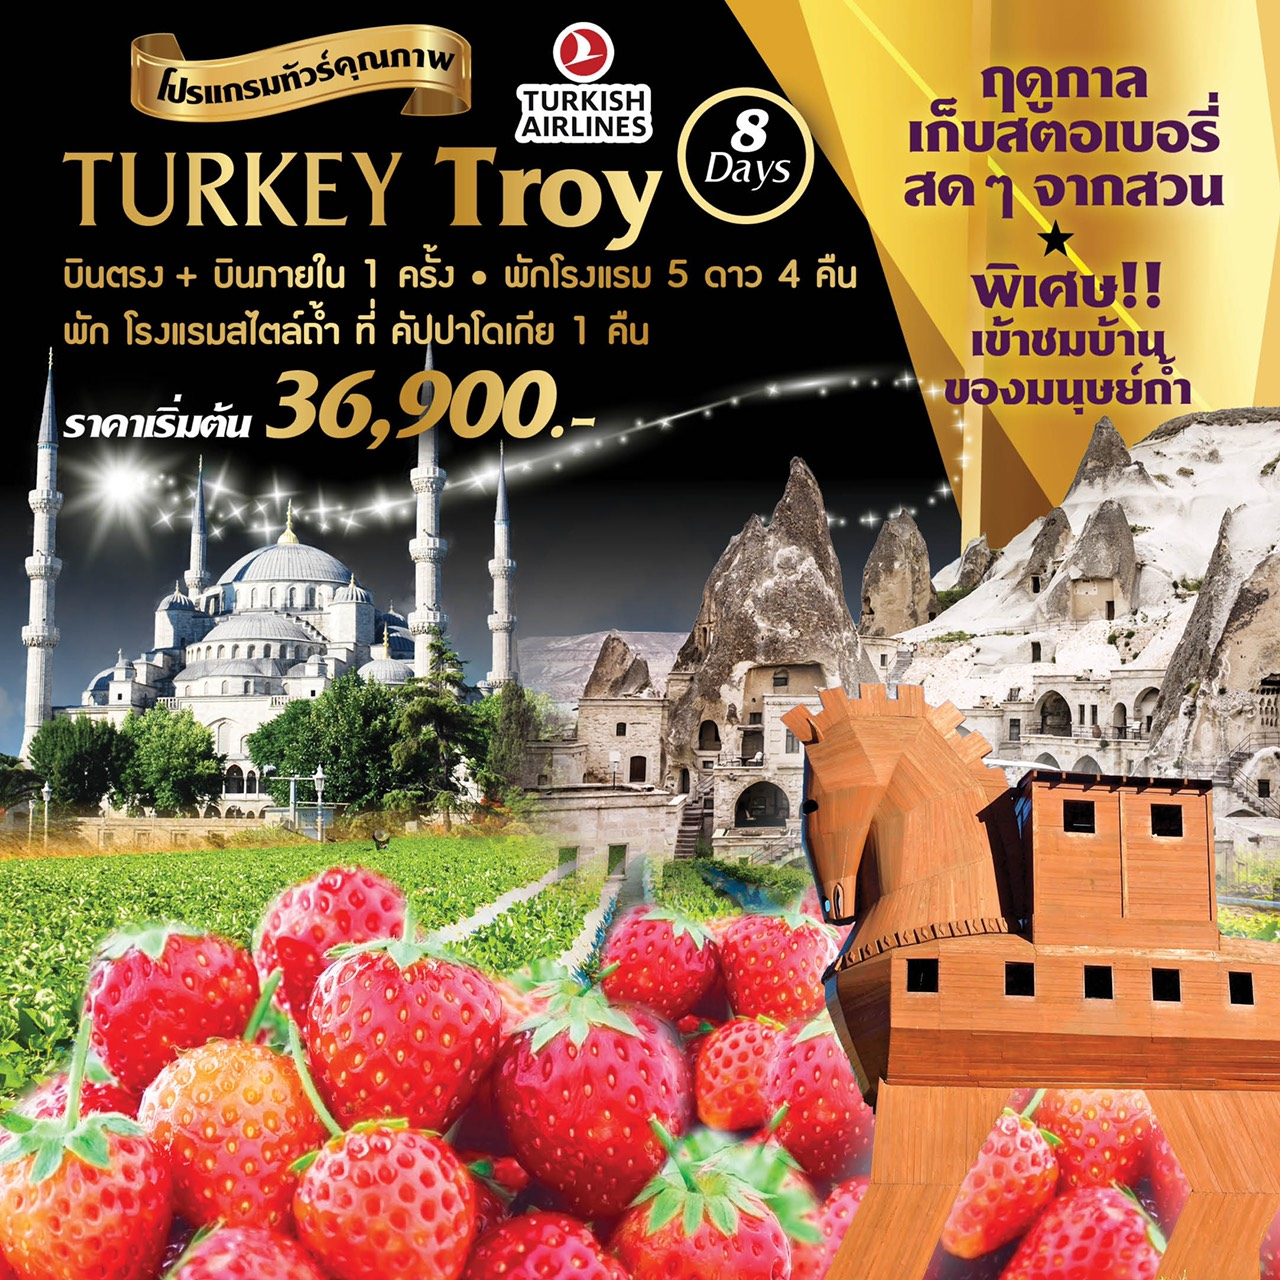 ทัวร์ตุรกี Turkey Troy 8 Days 5 Nights (SEP-OCT19)(TK )